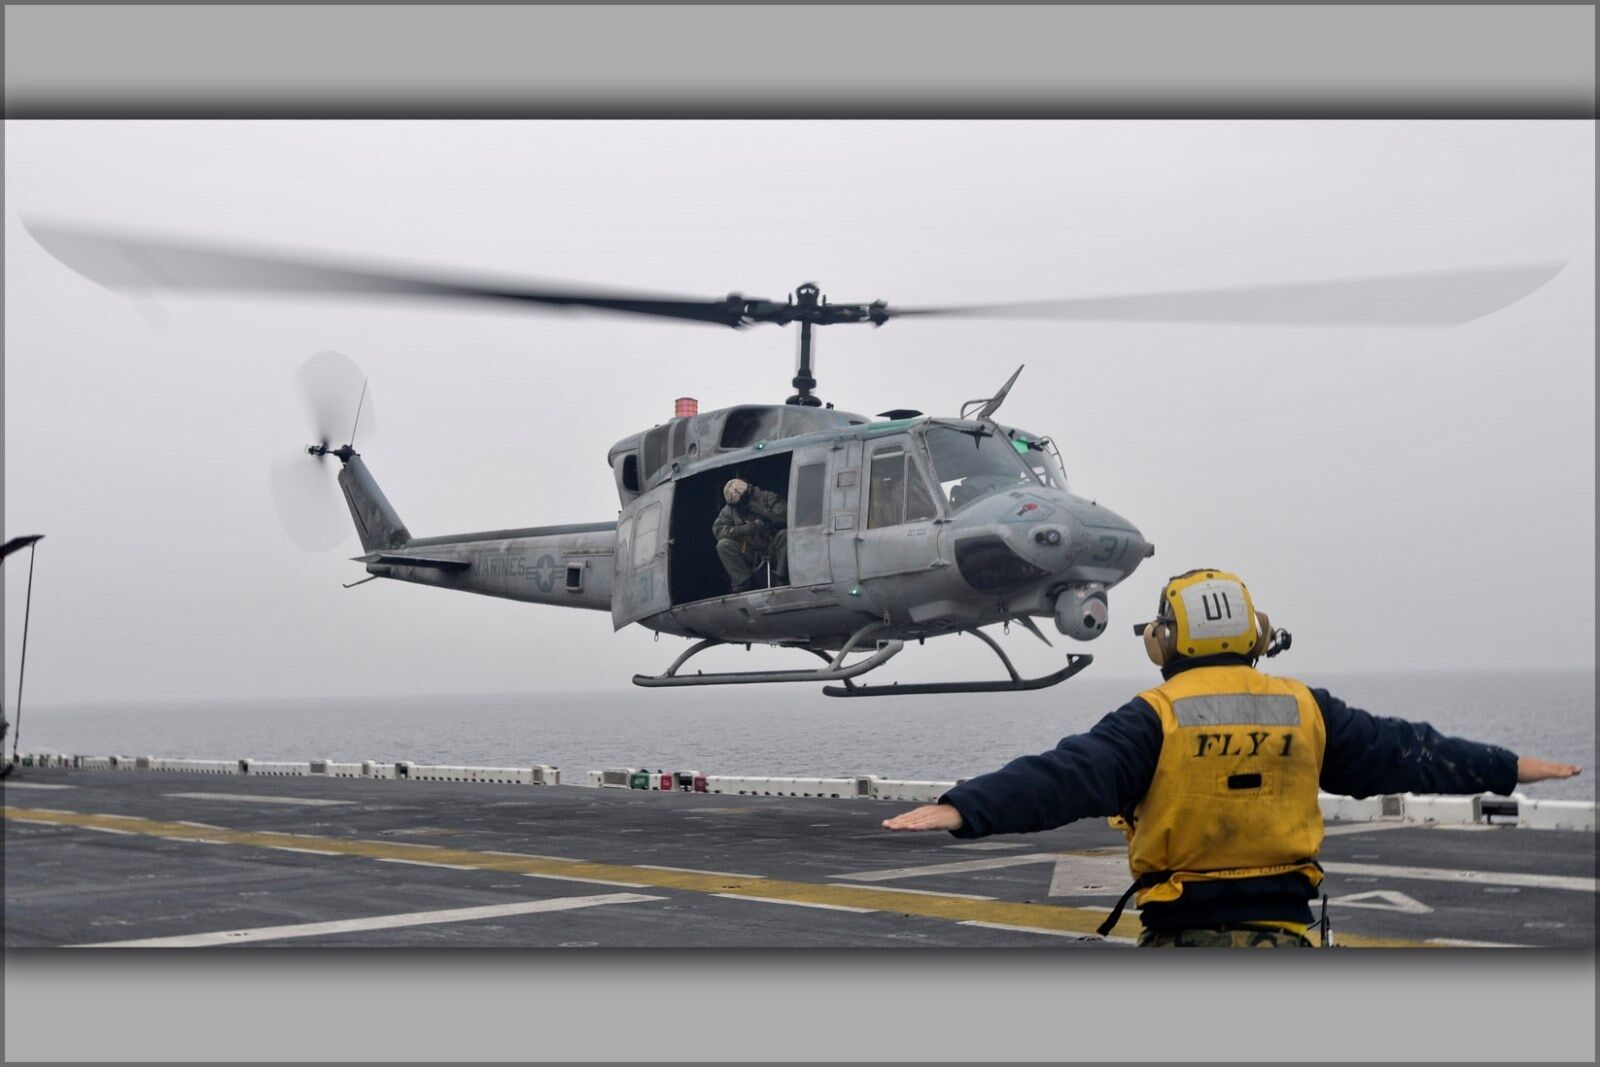 Poster, Poster, Poster, Molte Misure; Uh-1n Uh-1 Elicottero Huey a Bordo Uss Essex (LHD 2) c58f06